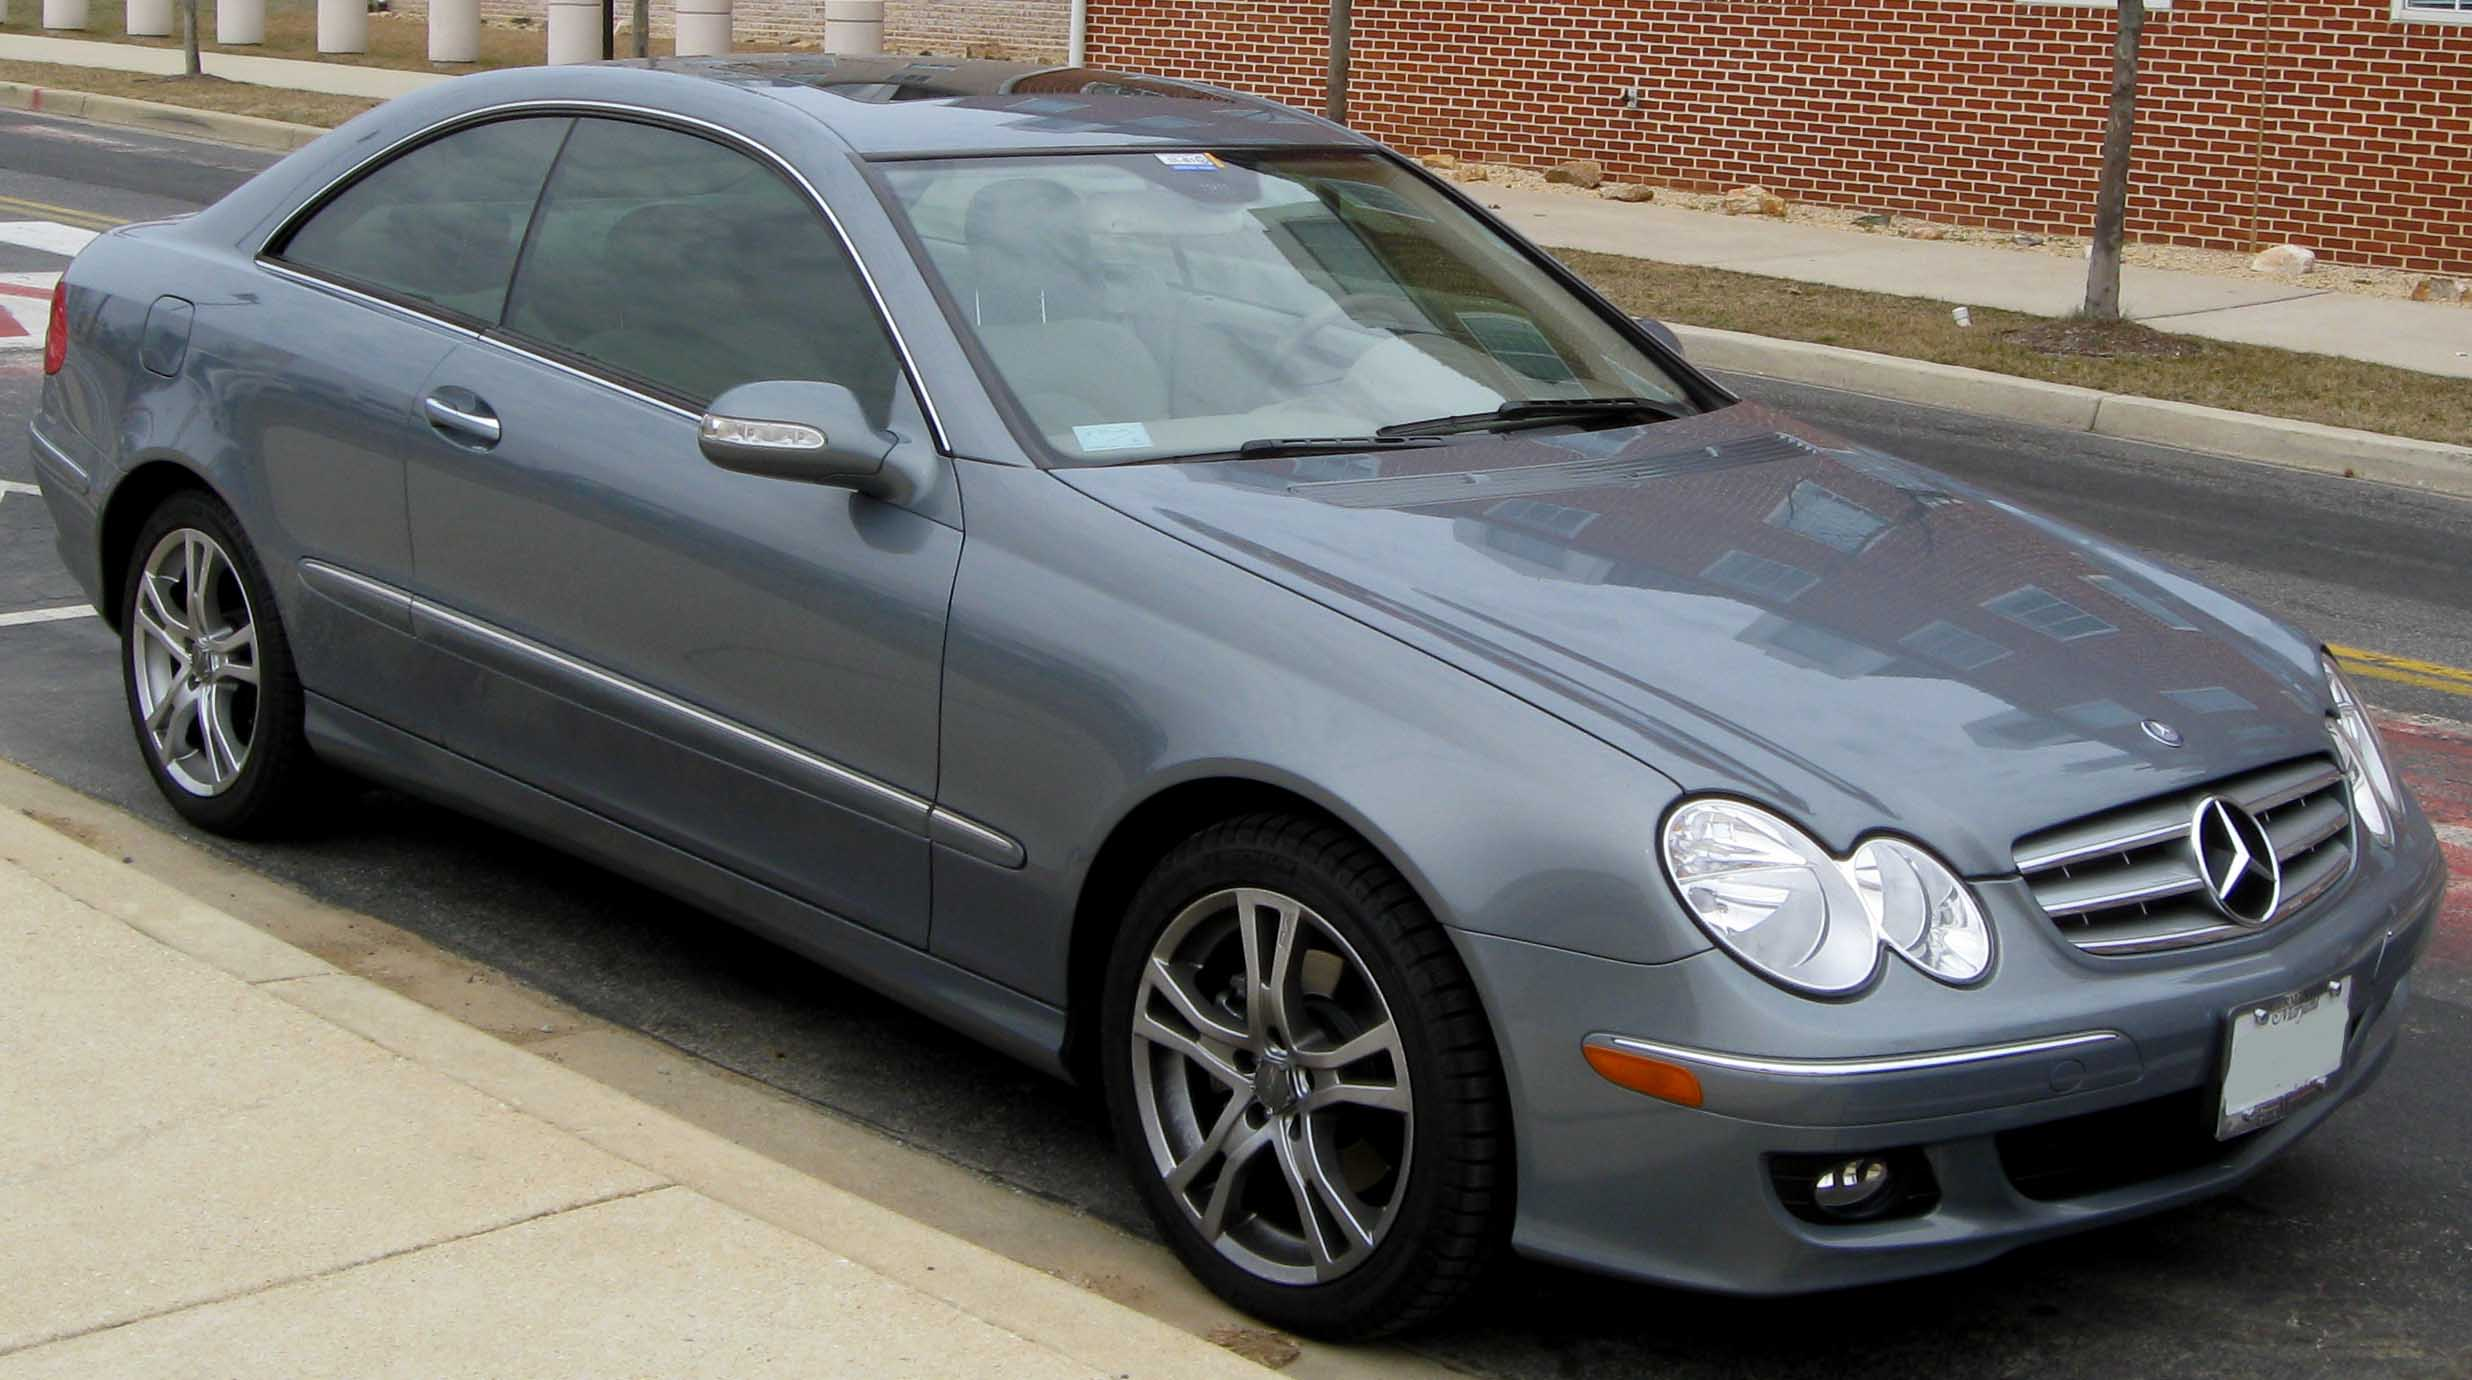 Image gallery mercedes clk350 for 2009 mercedes benz clk350 for sale